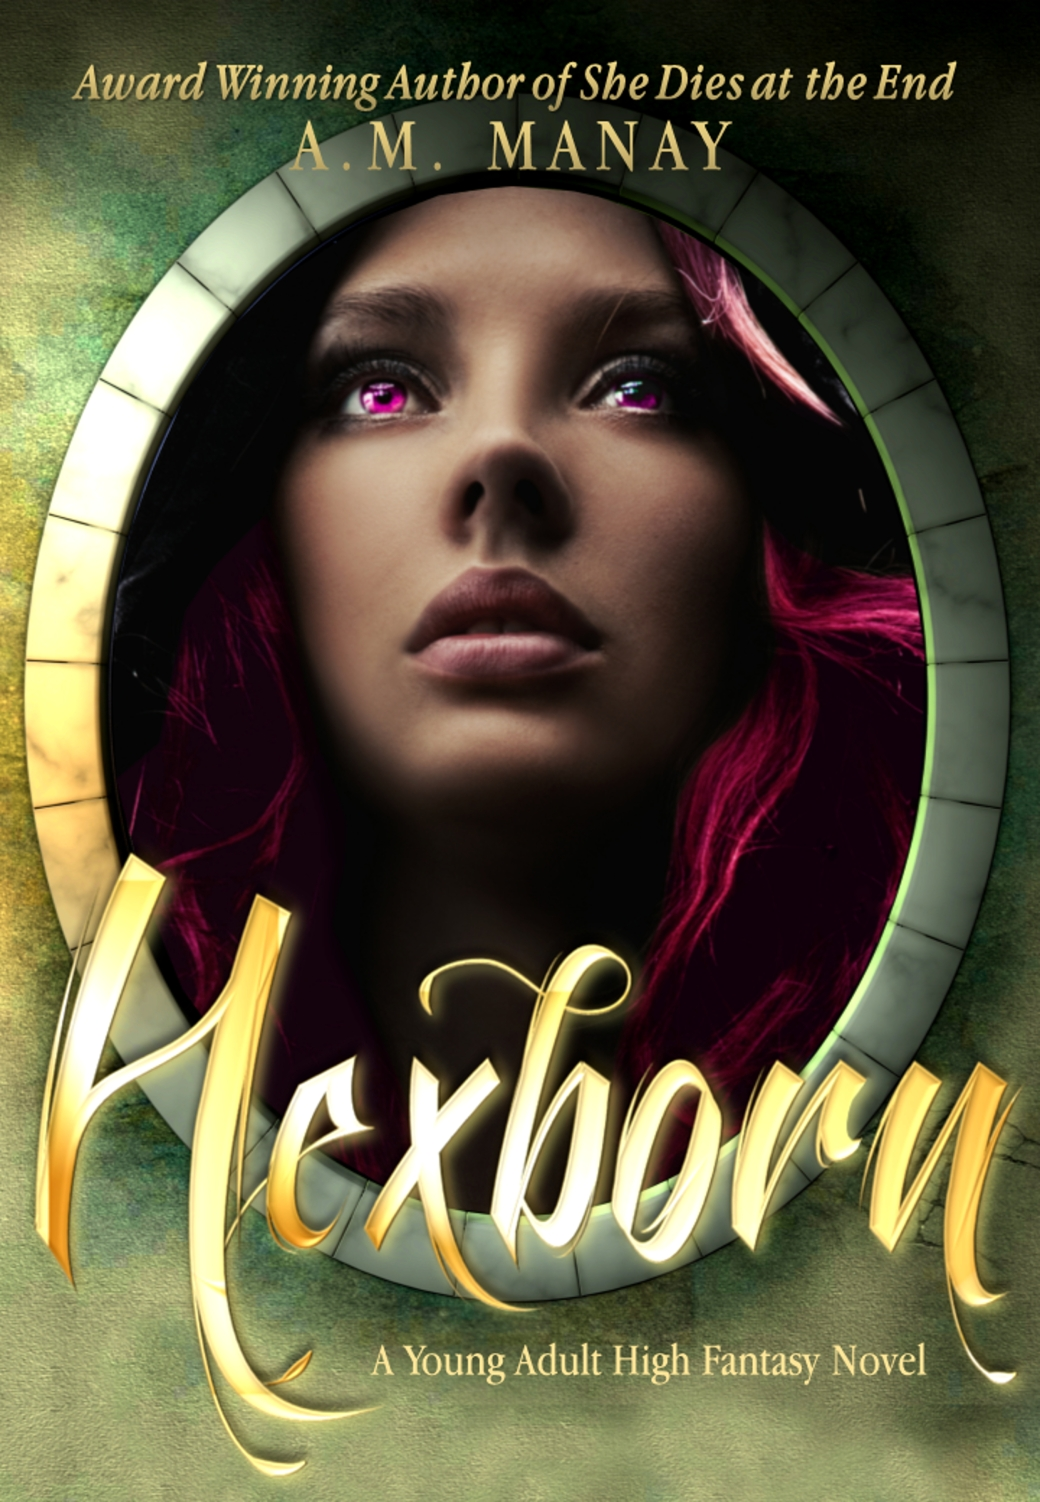 Hexborn A.M. Manay epic fantasy high fantasy young adult sword and sorcery